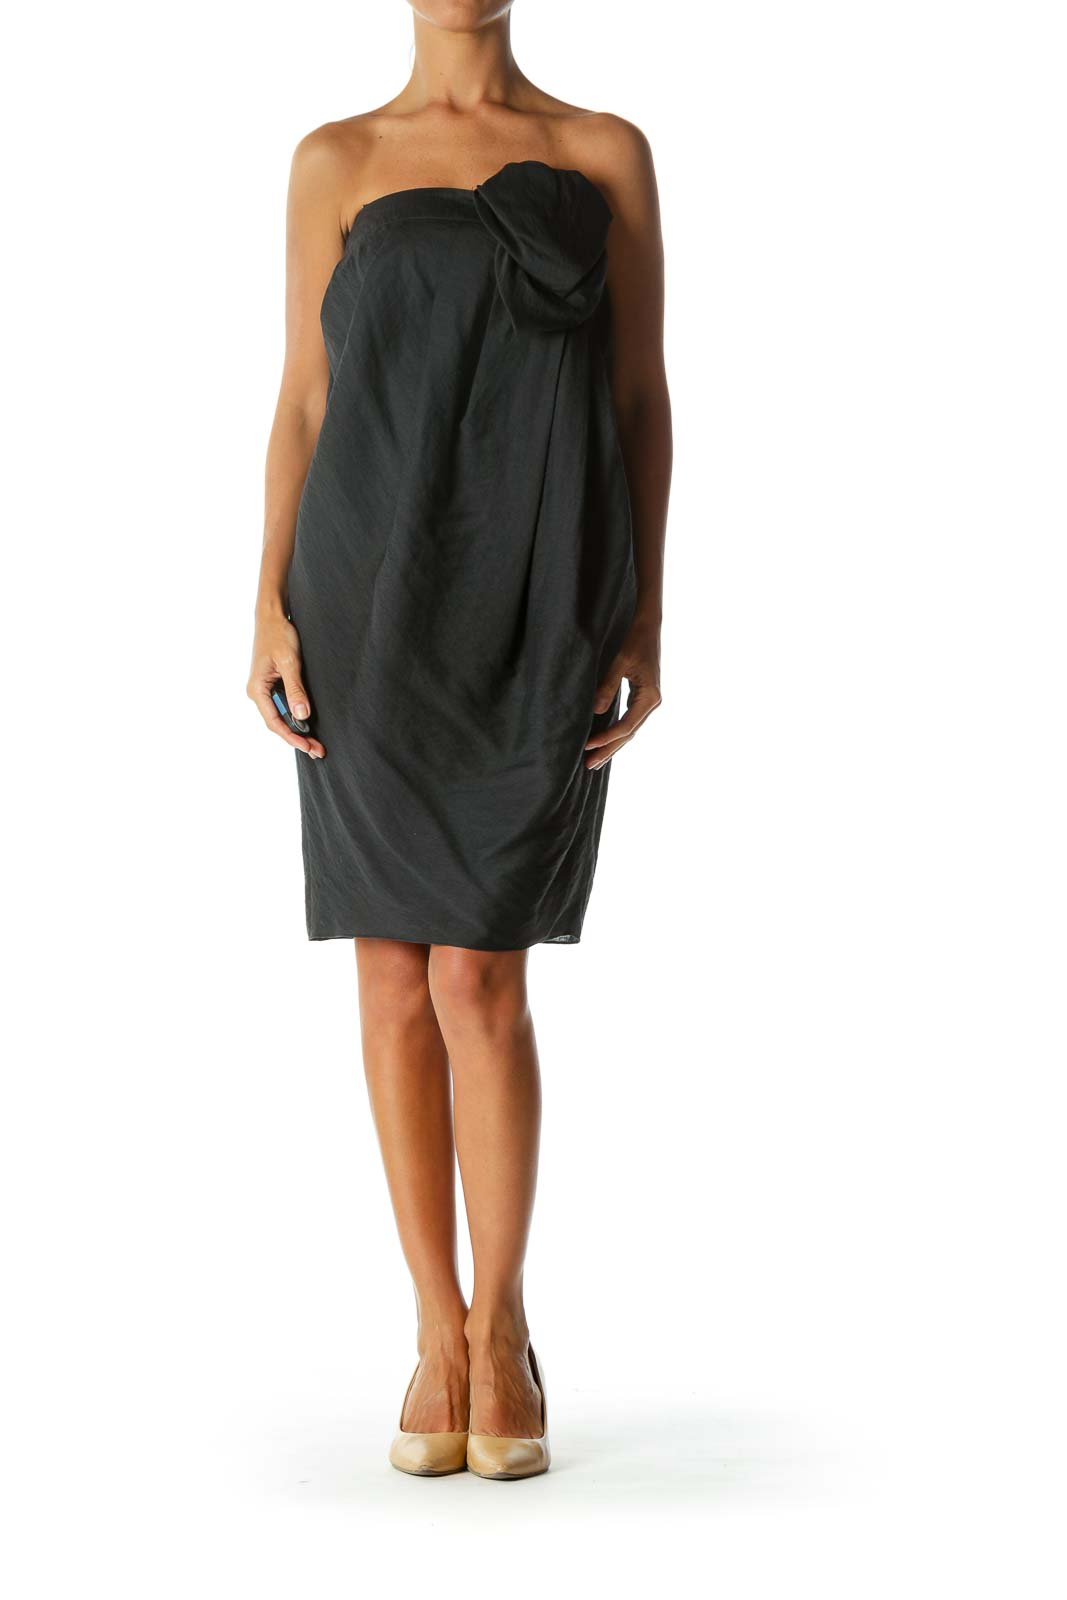 Black Strapless Designer Pleated Cocktail Dress with Chest Applique